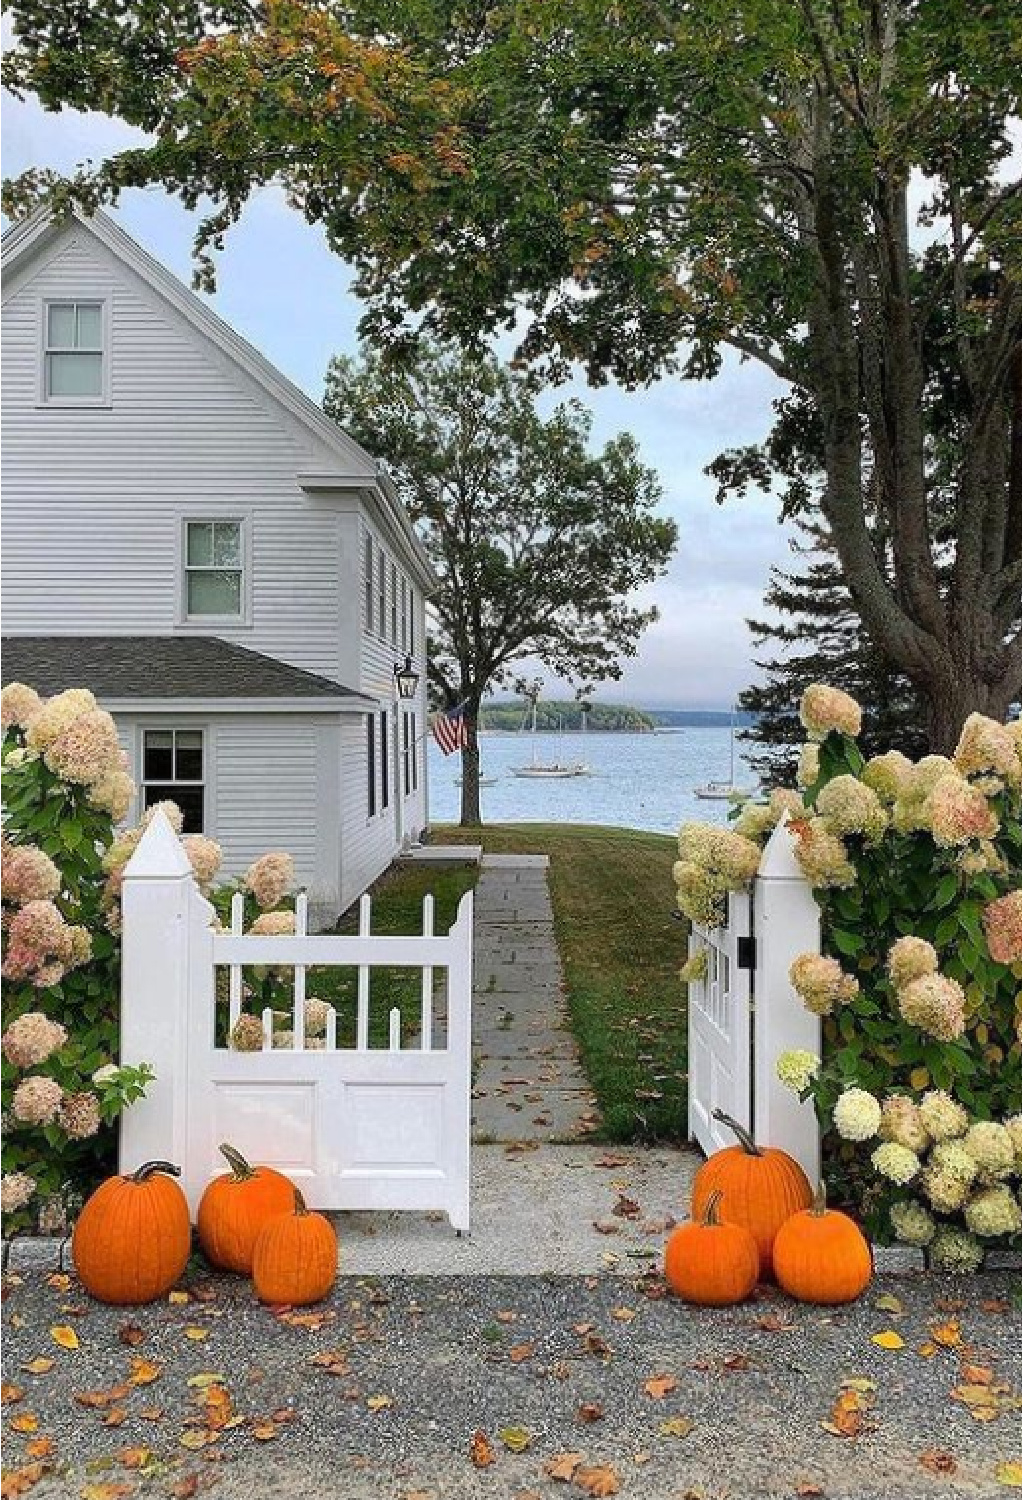 Maine historic seaside home in fall with pumpkins and limelight hydrangea - @loithai of Tone on Tone. #mainehomes #limelighthydrangea #houseexteriors